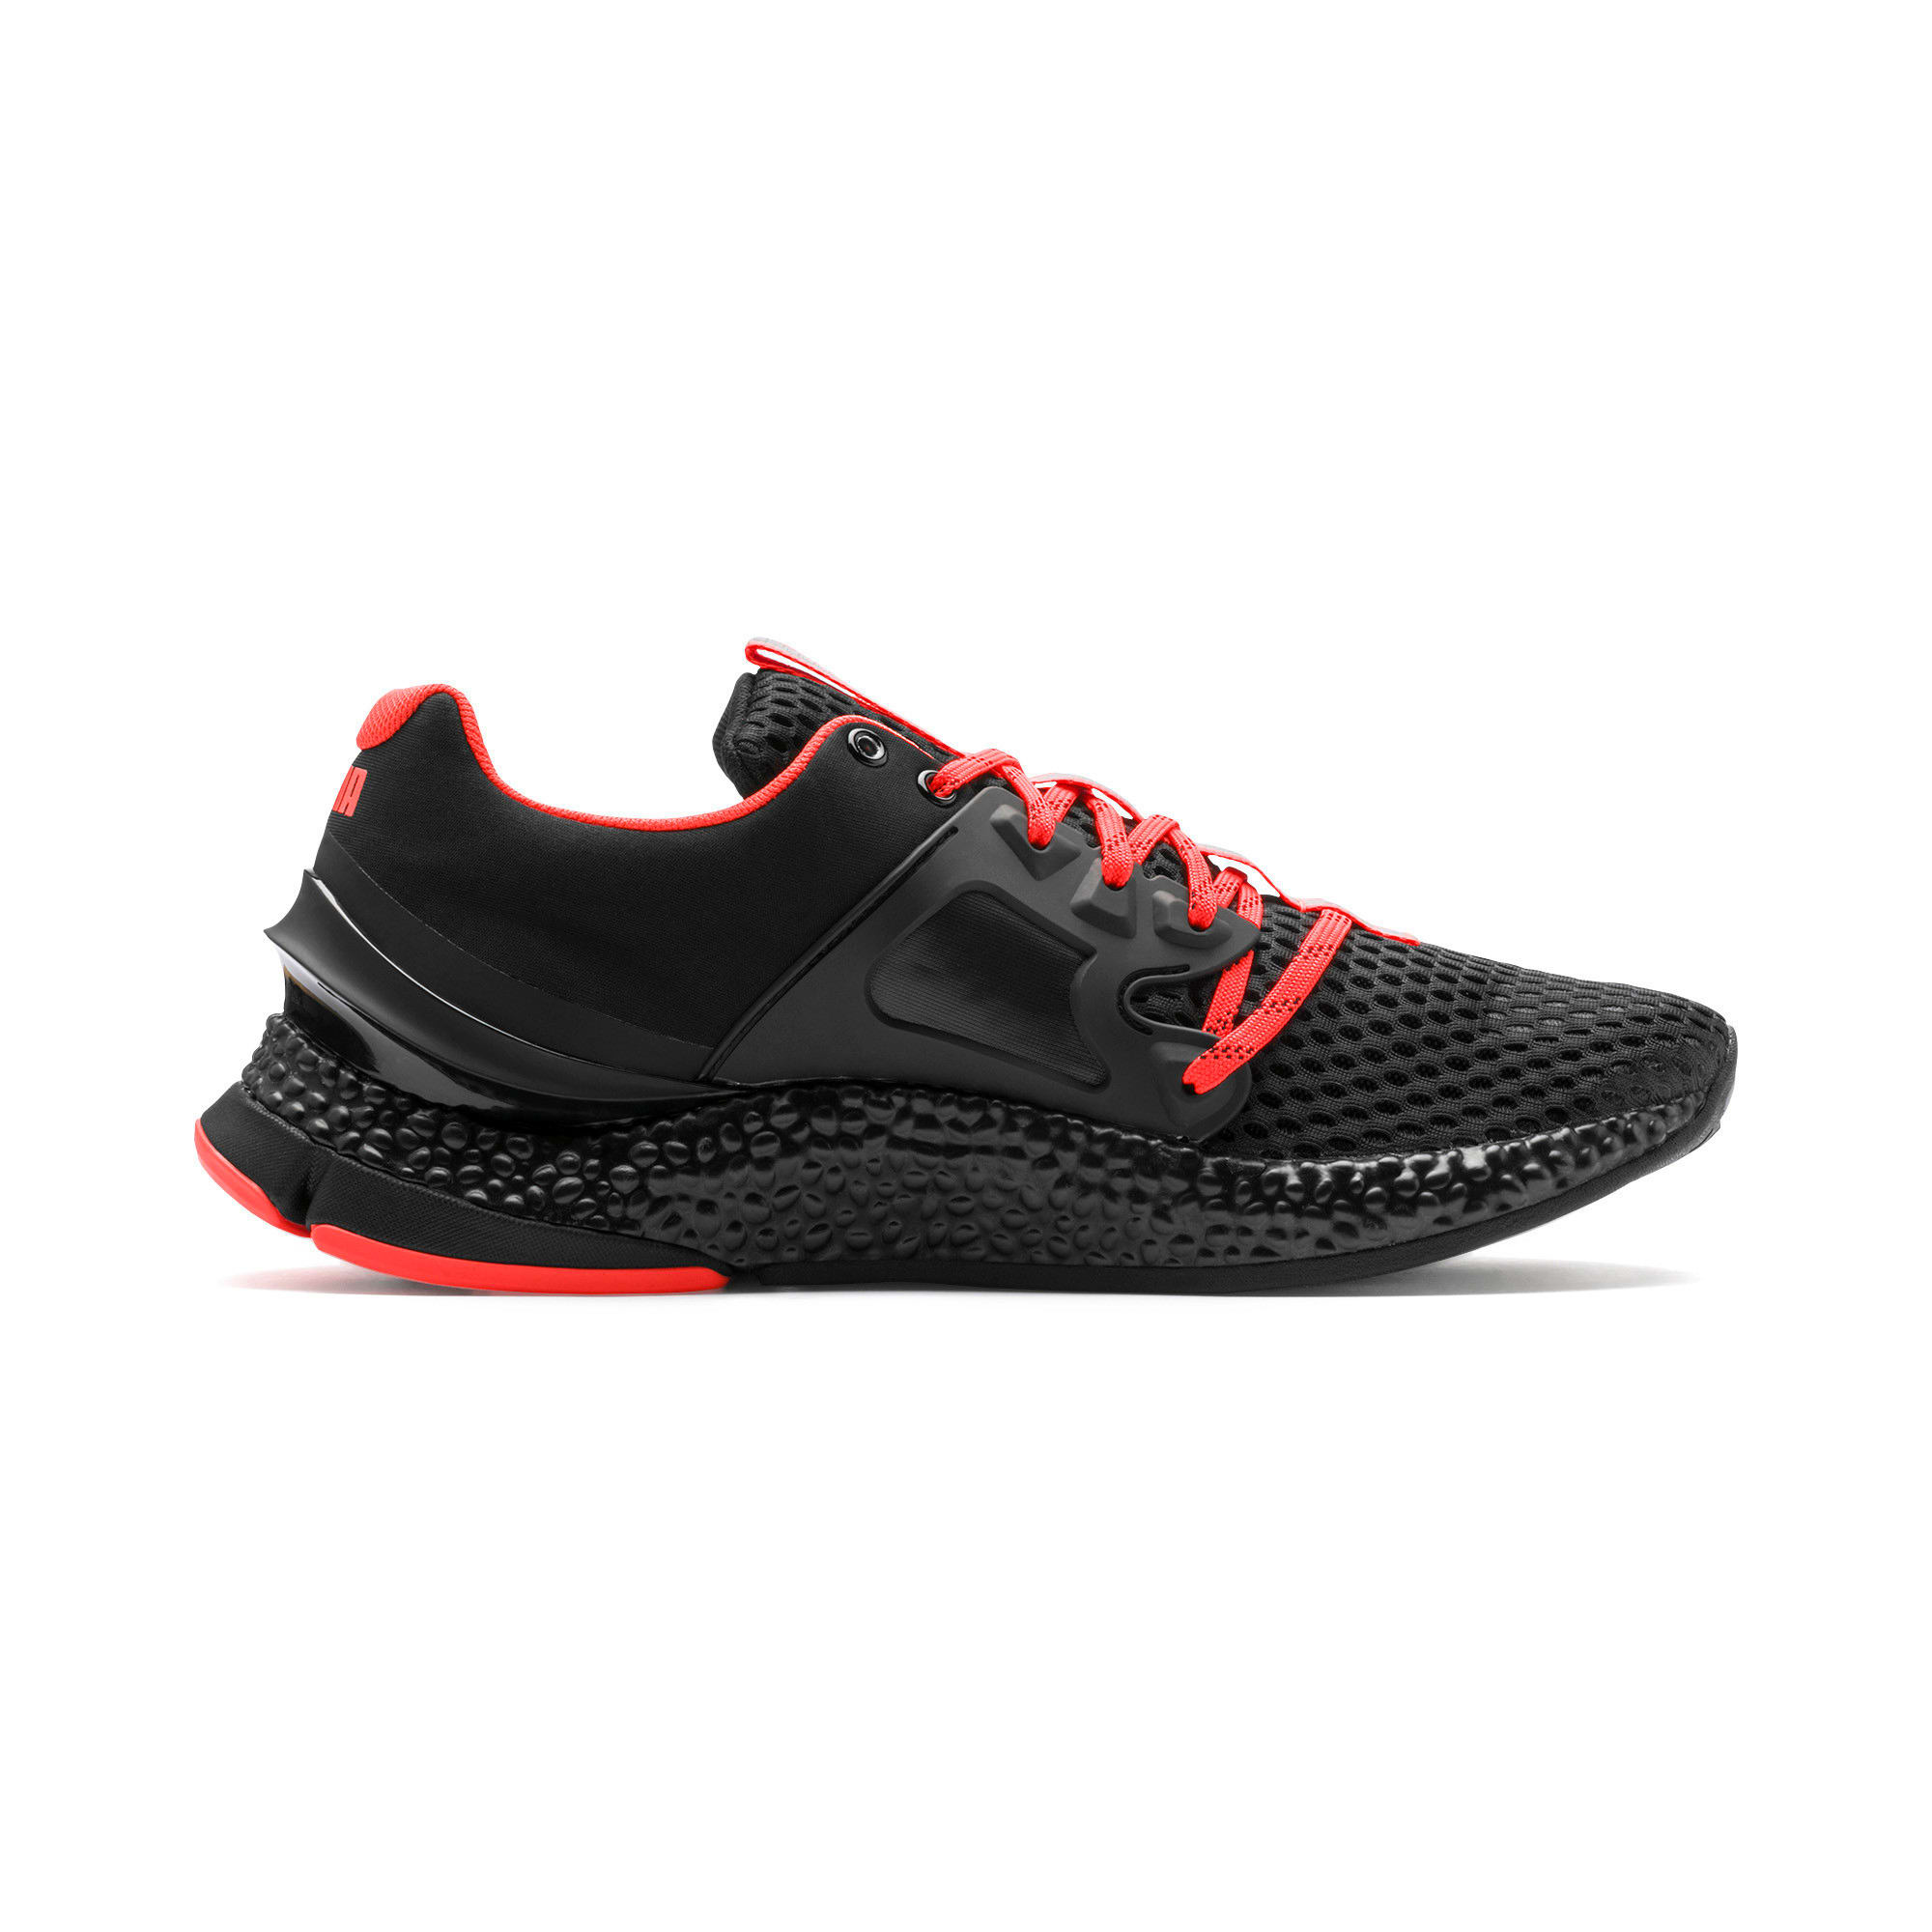 Thumbnail 6 of HYBRID Sky Men's Running Shoes, Black-White-Nrgy Red, medium